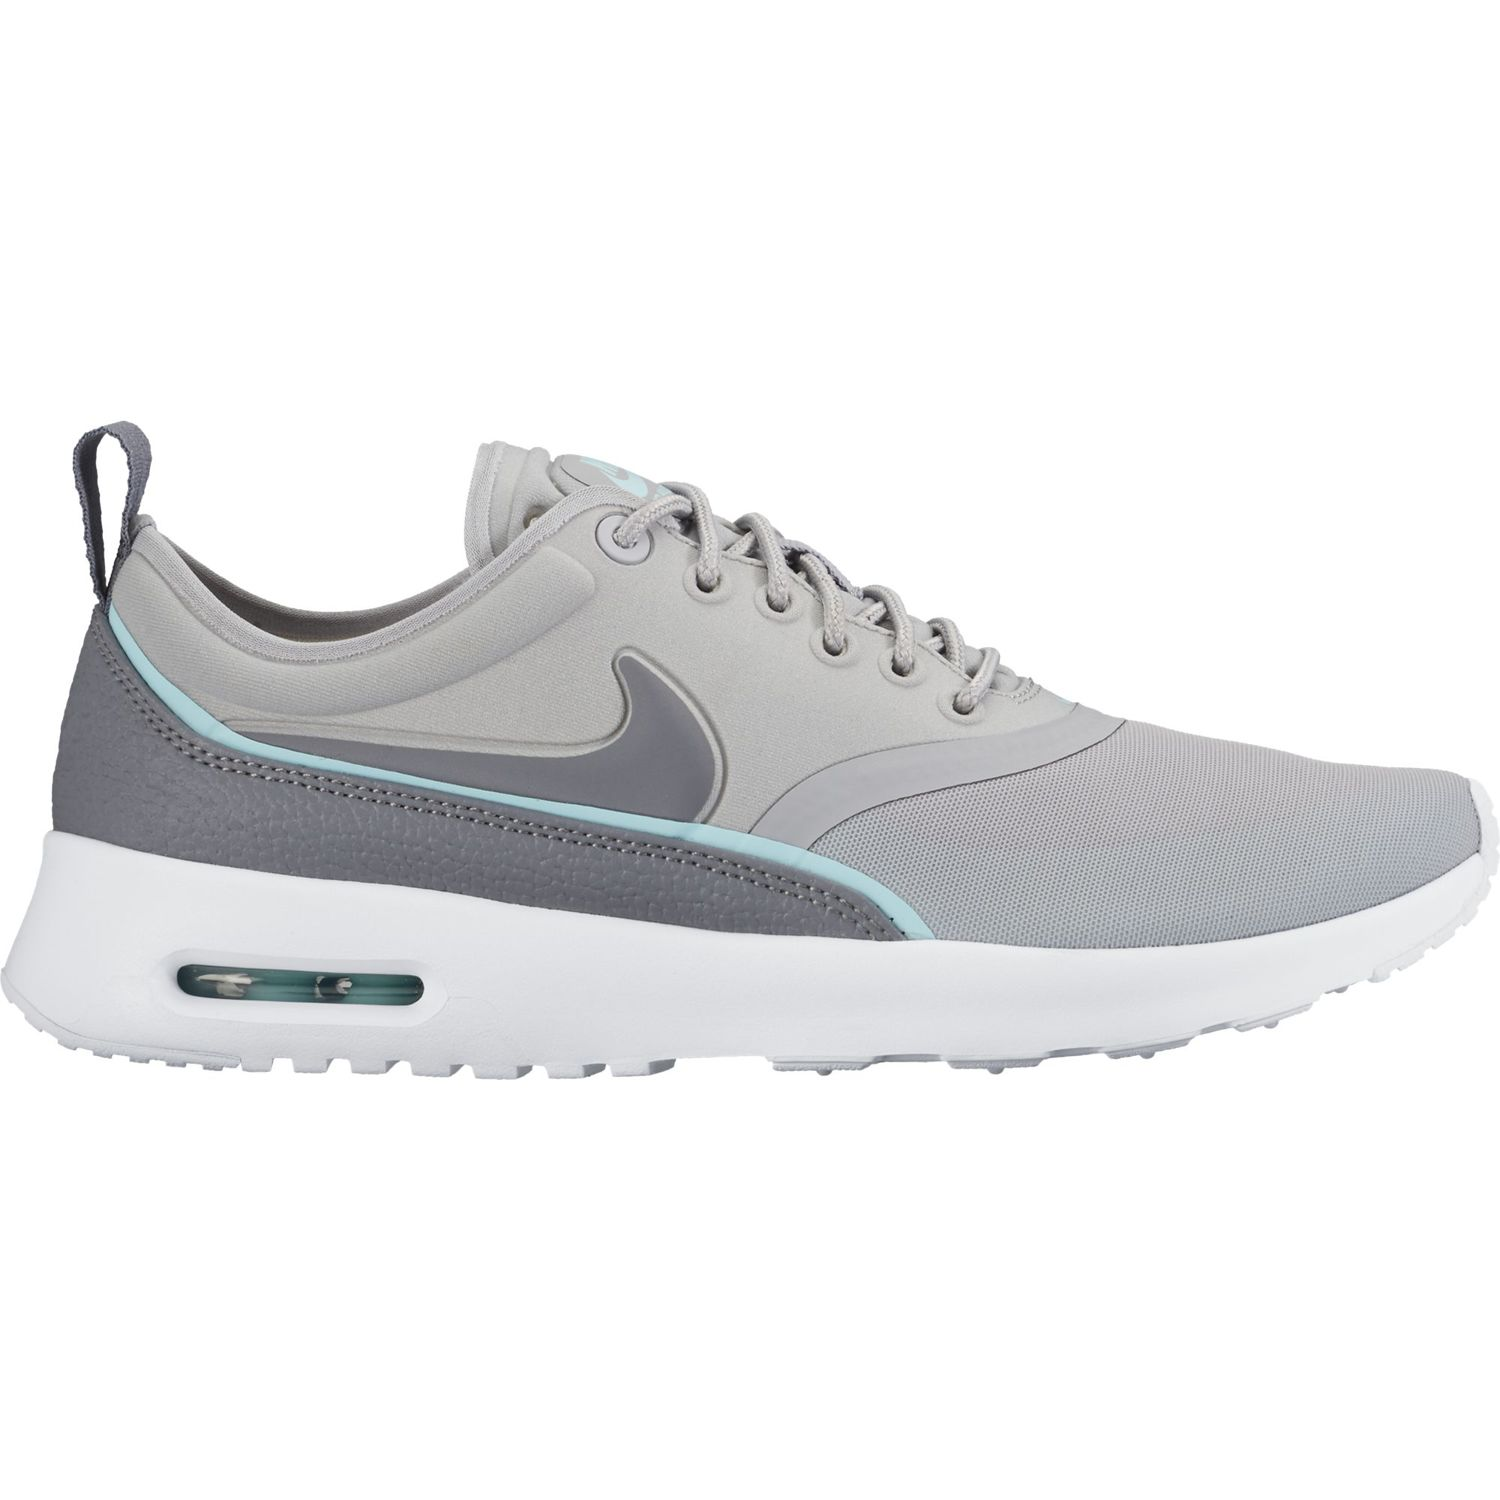 Nike Air Max Thea Ultra Wolf Grey 844926 002